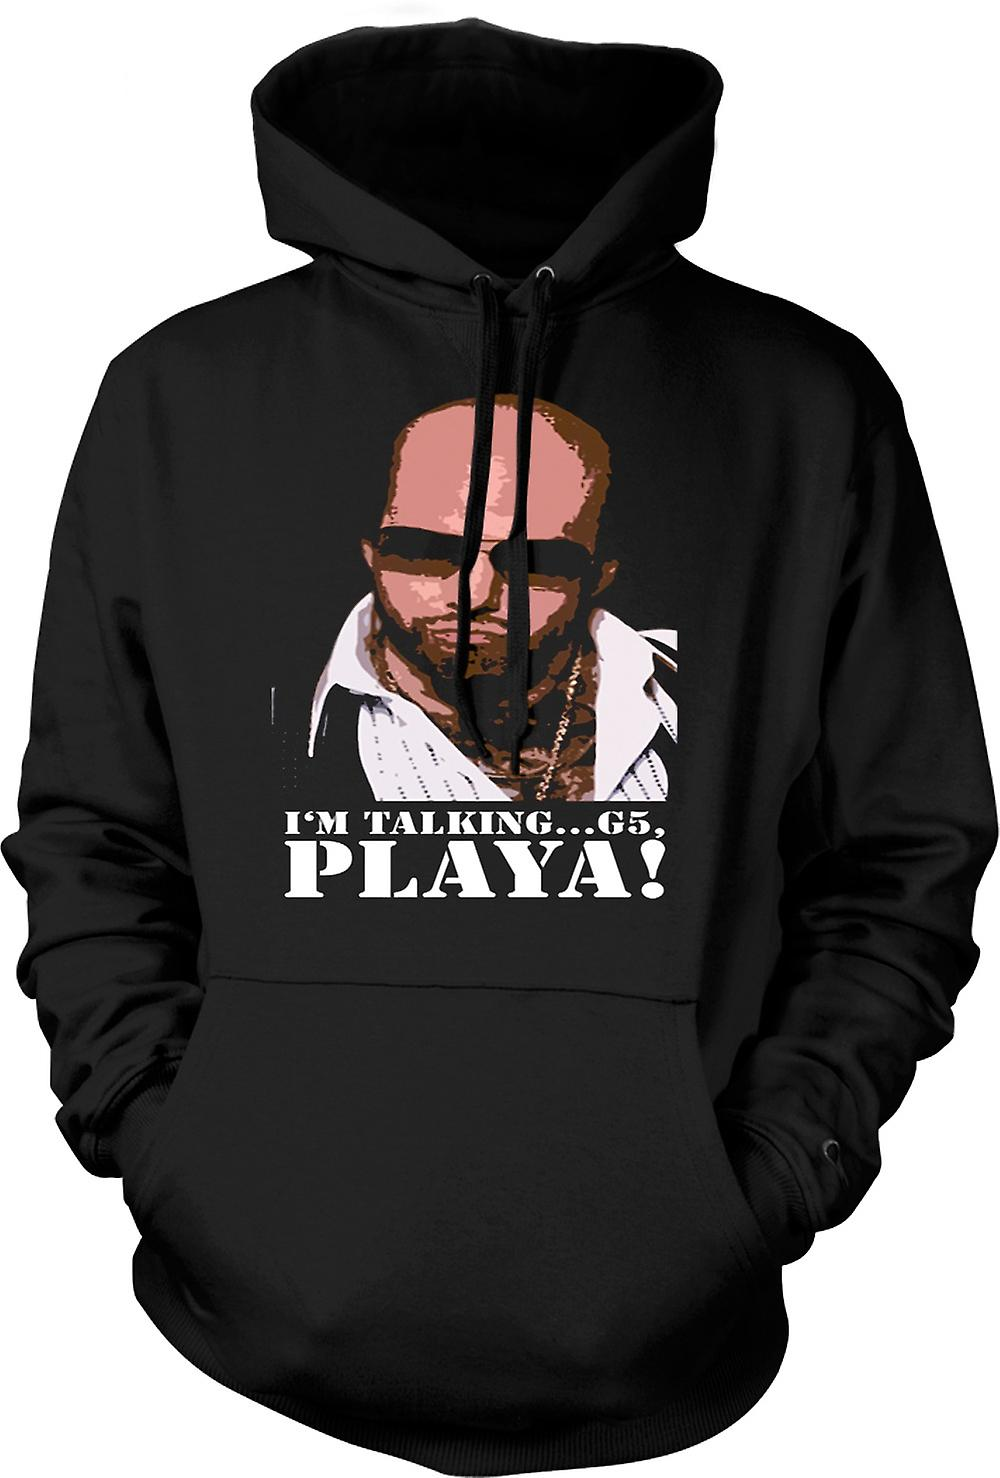 Mens Hoodie - Tropic Thunder Playa - Grossman - Funny